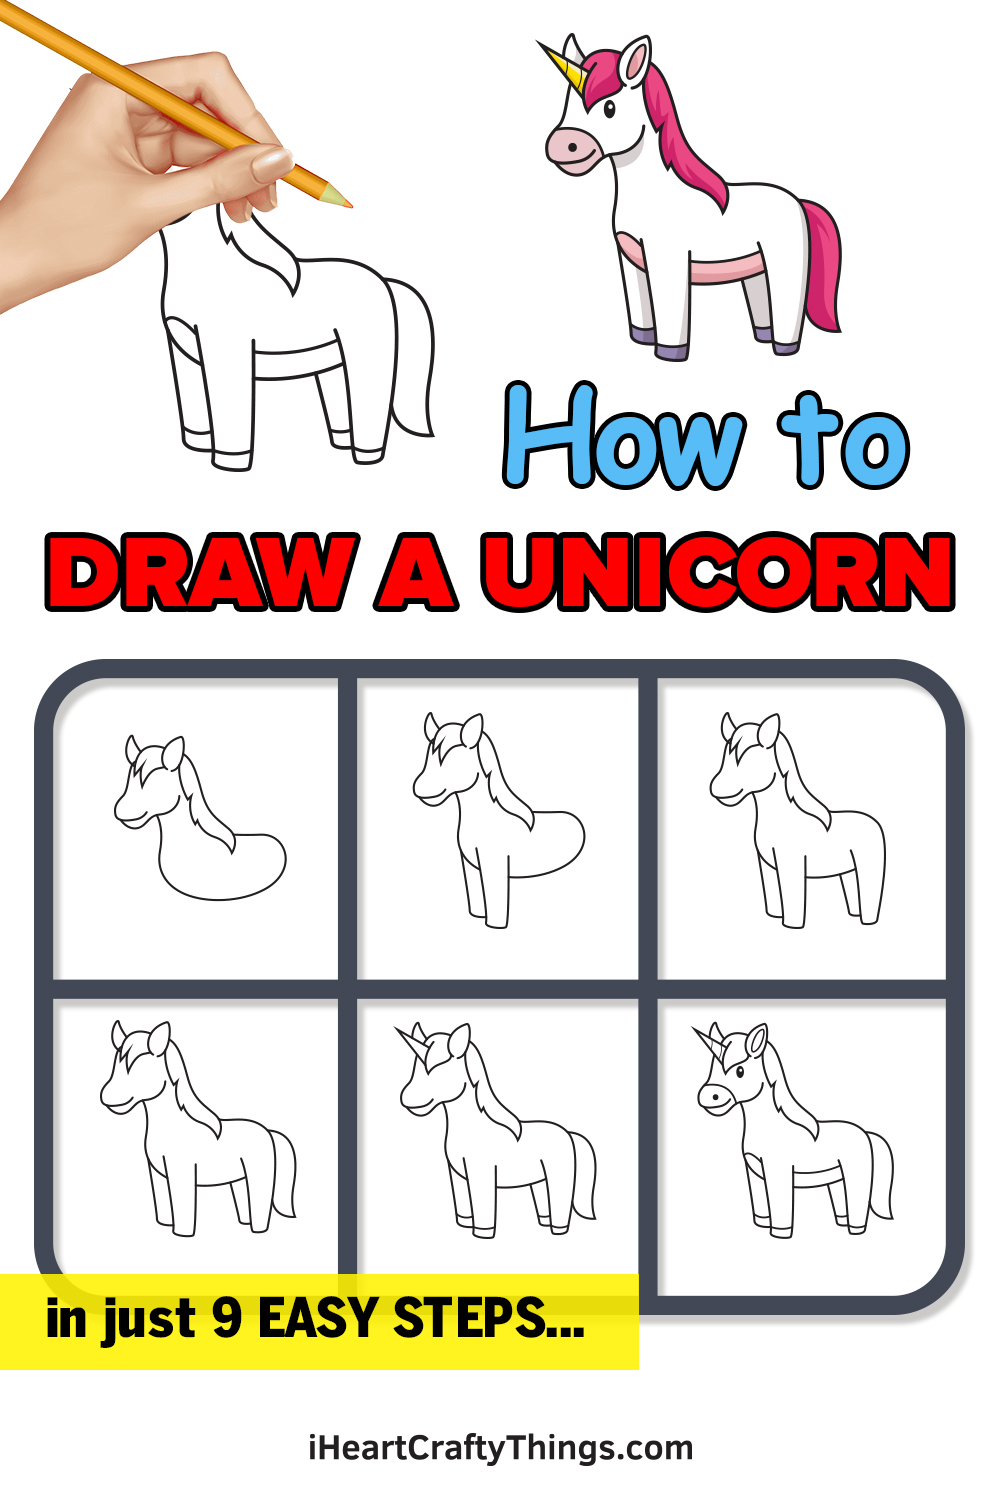 how to draw a unicorn in 9 easy steps